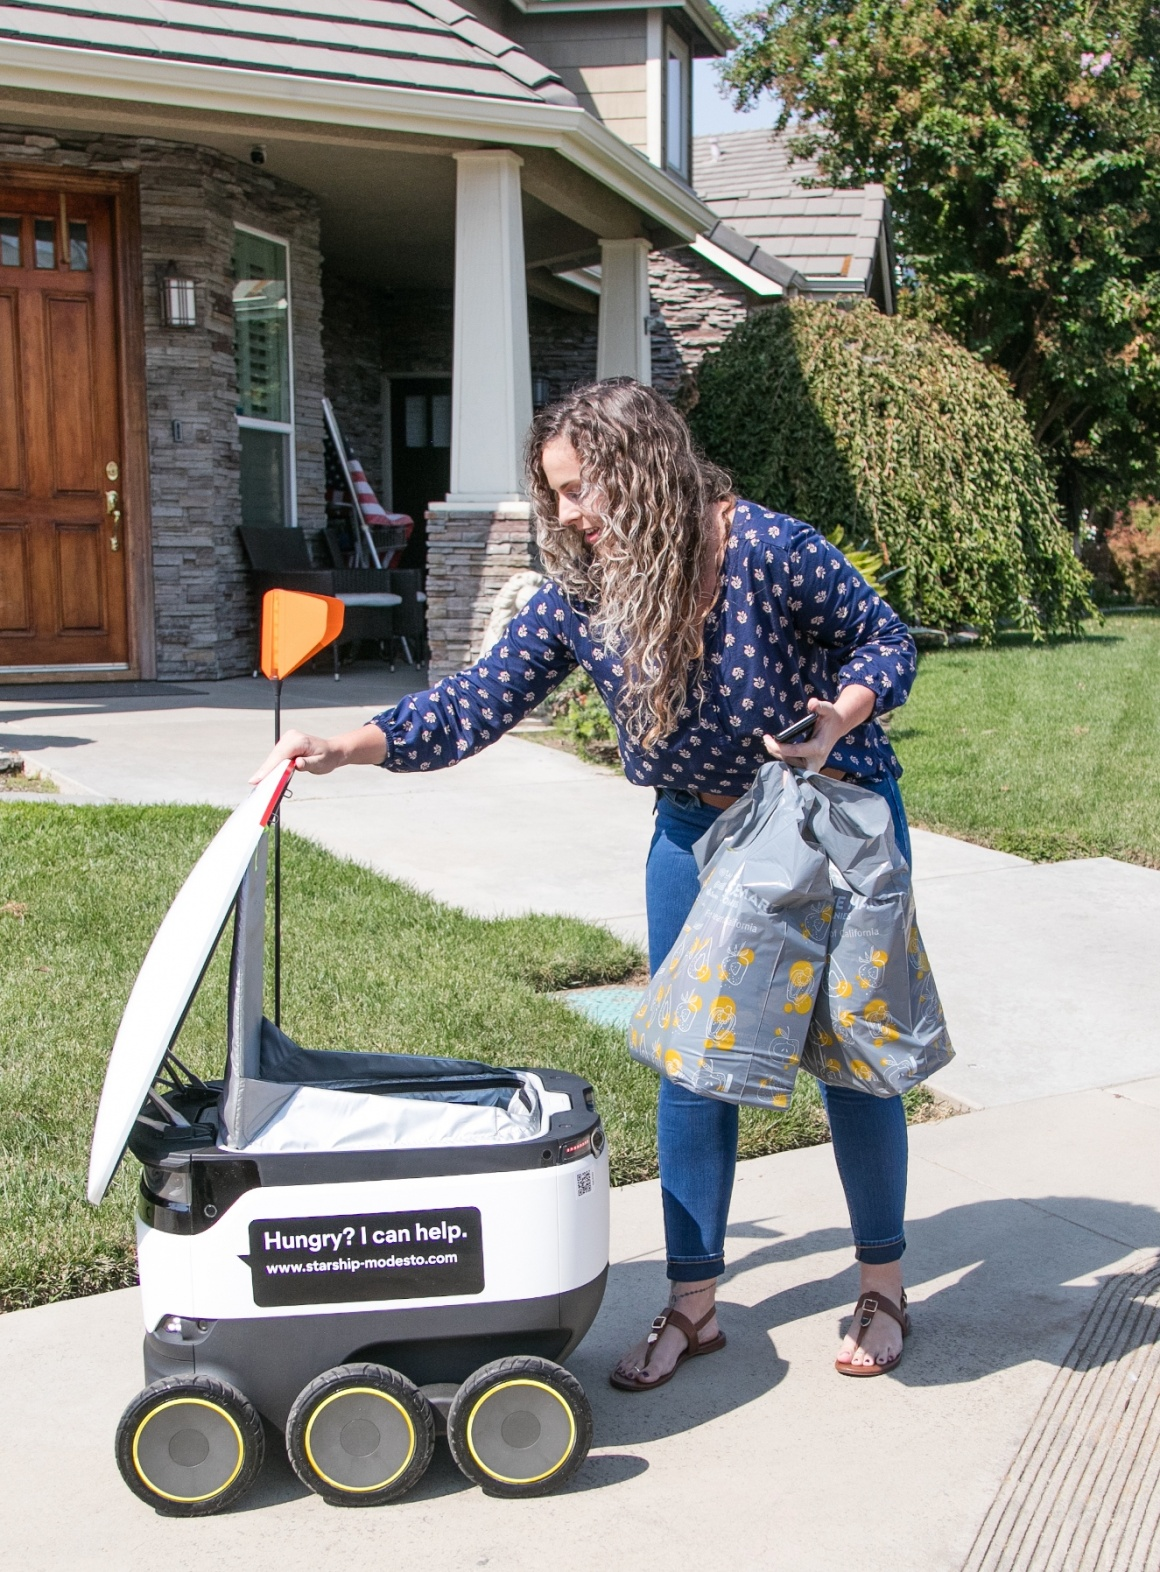 A woman is taking shopping bags from a delivery robot...